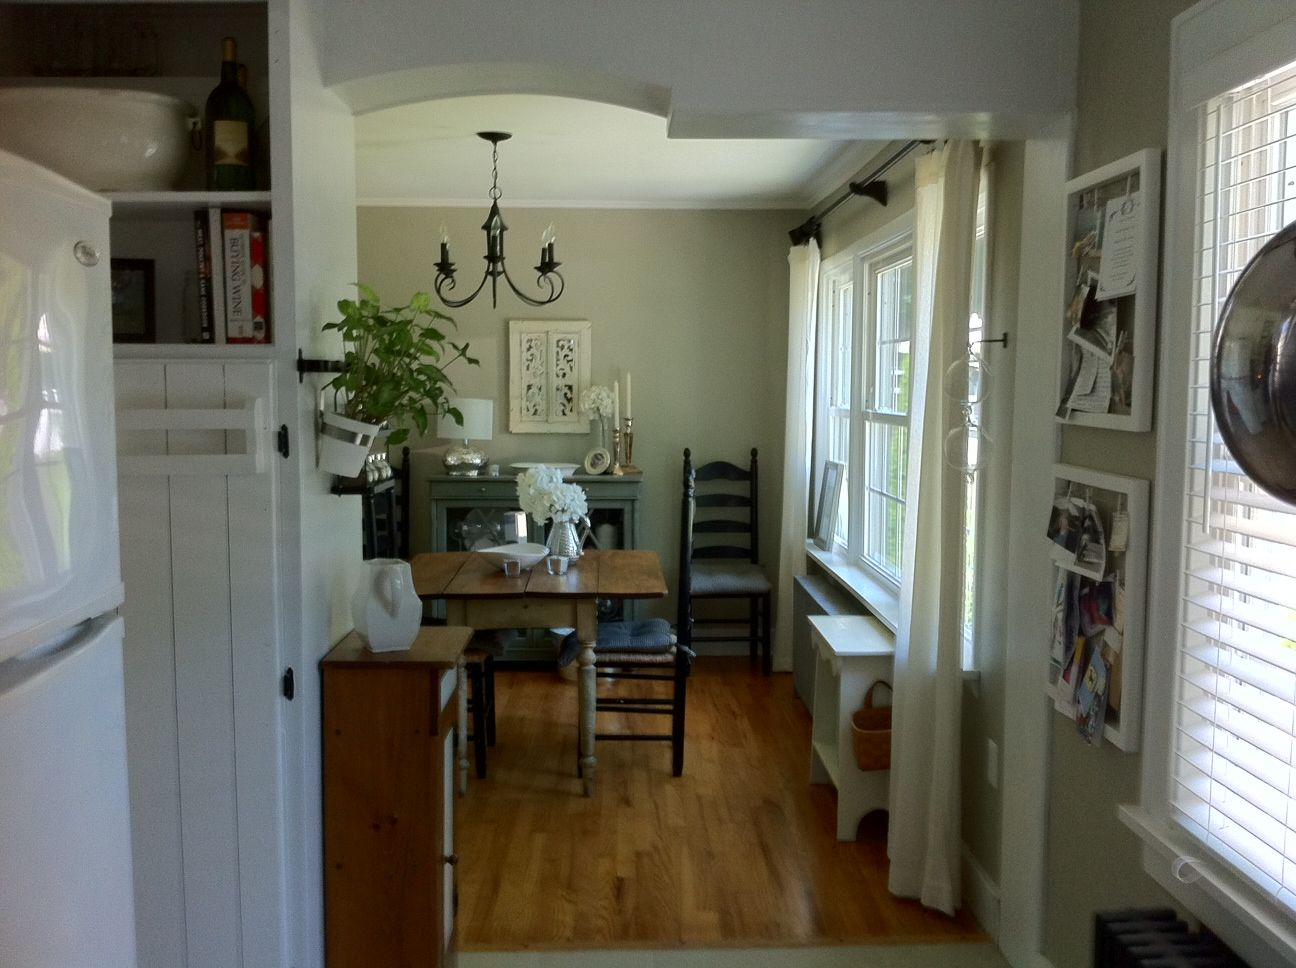 kitchen into dining room, knocked out cabinets separating ...